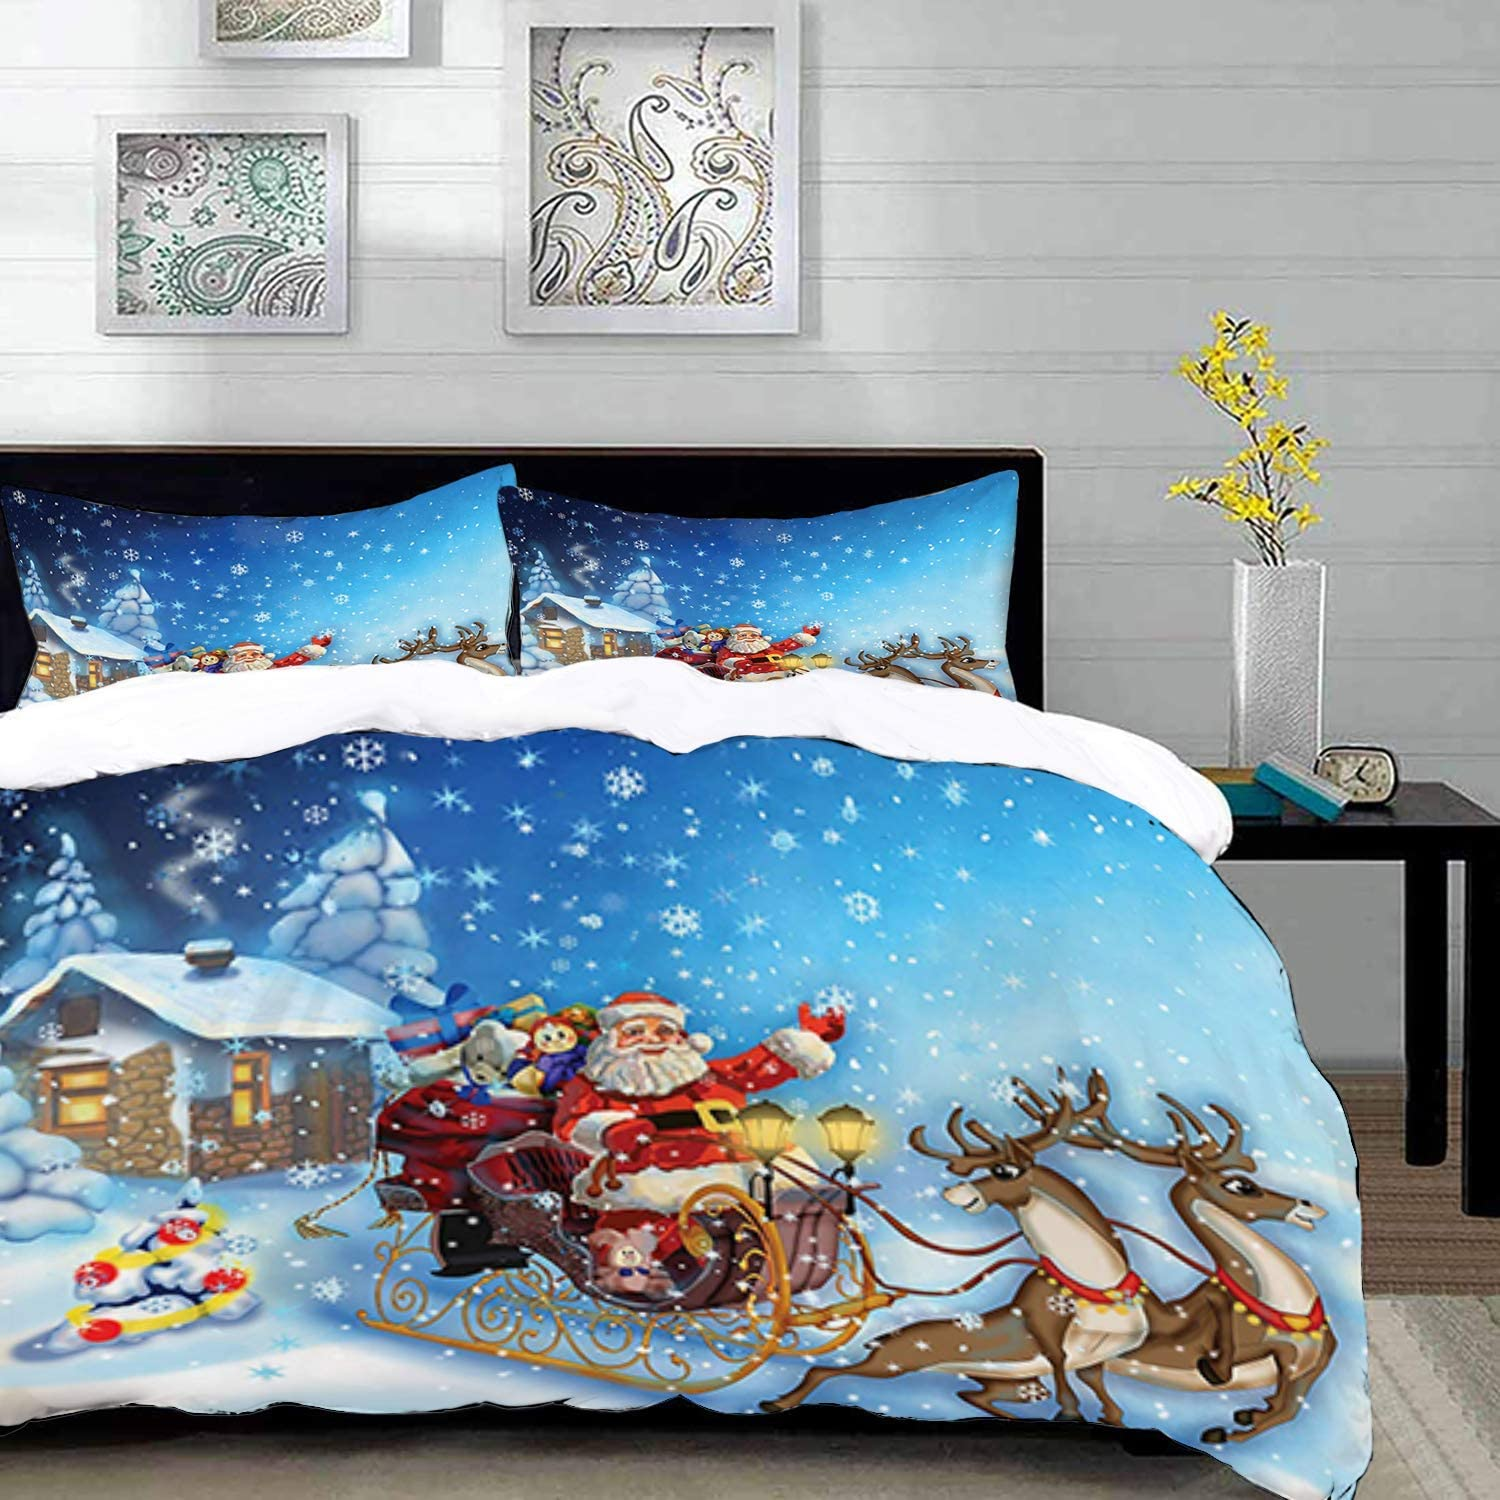 Qoqon Bedding Duvet Cover Set Christmas Santa In Sleigh With Reindeer And Toys In Snowy North Pole Tale Fantasy Image Multico Microfibre Duvet Cover Set With 2 Pillowcase 50 X 75cm Amazon Co Uk Kitchen